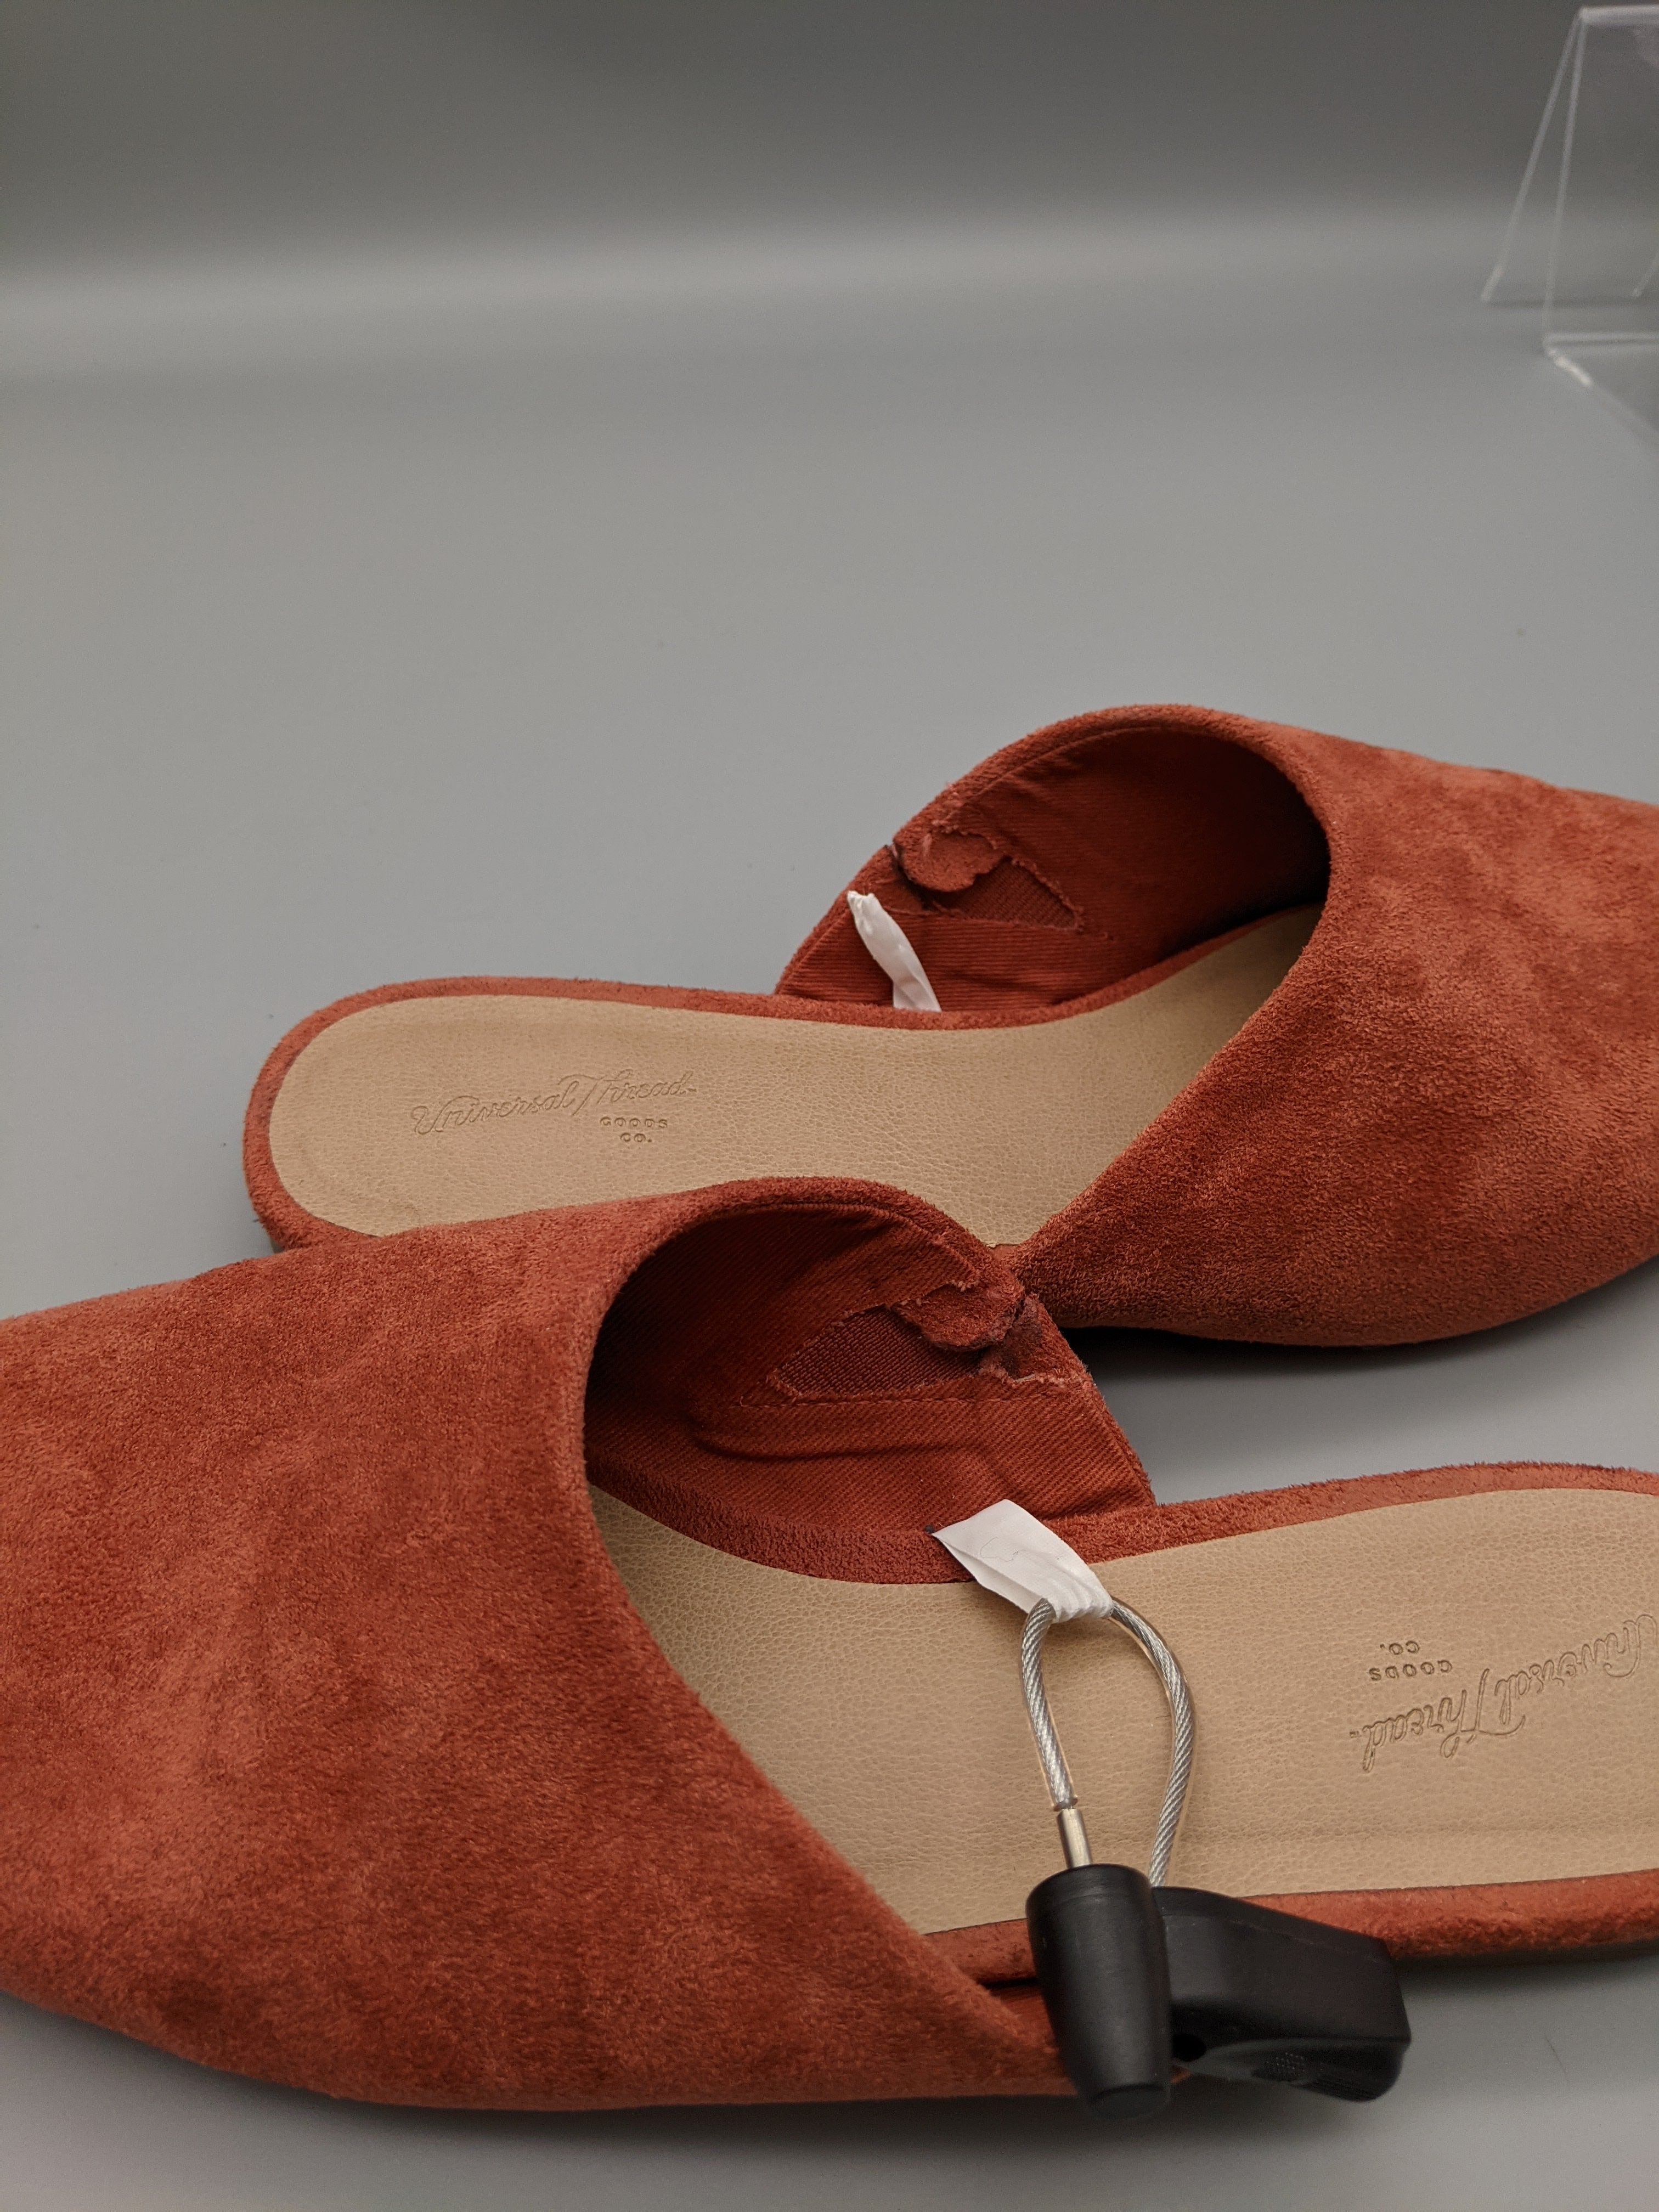 Shoes Flats By Universal Thread  Size: 9 - BRAND: UNIVERSAL THREAD <BR>STYLE: SHOES FLATS <BR>COLOR: CORAL <BR>SIZE: 9 <BR>SKU: 115-115347-1693<BR>SOME WEAR